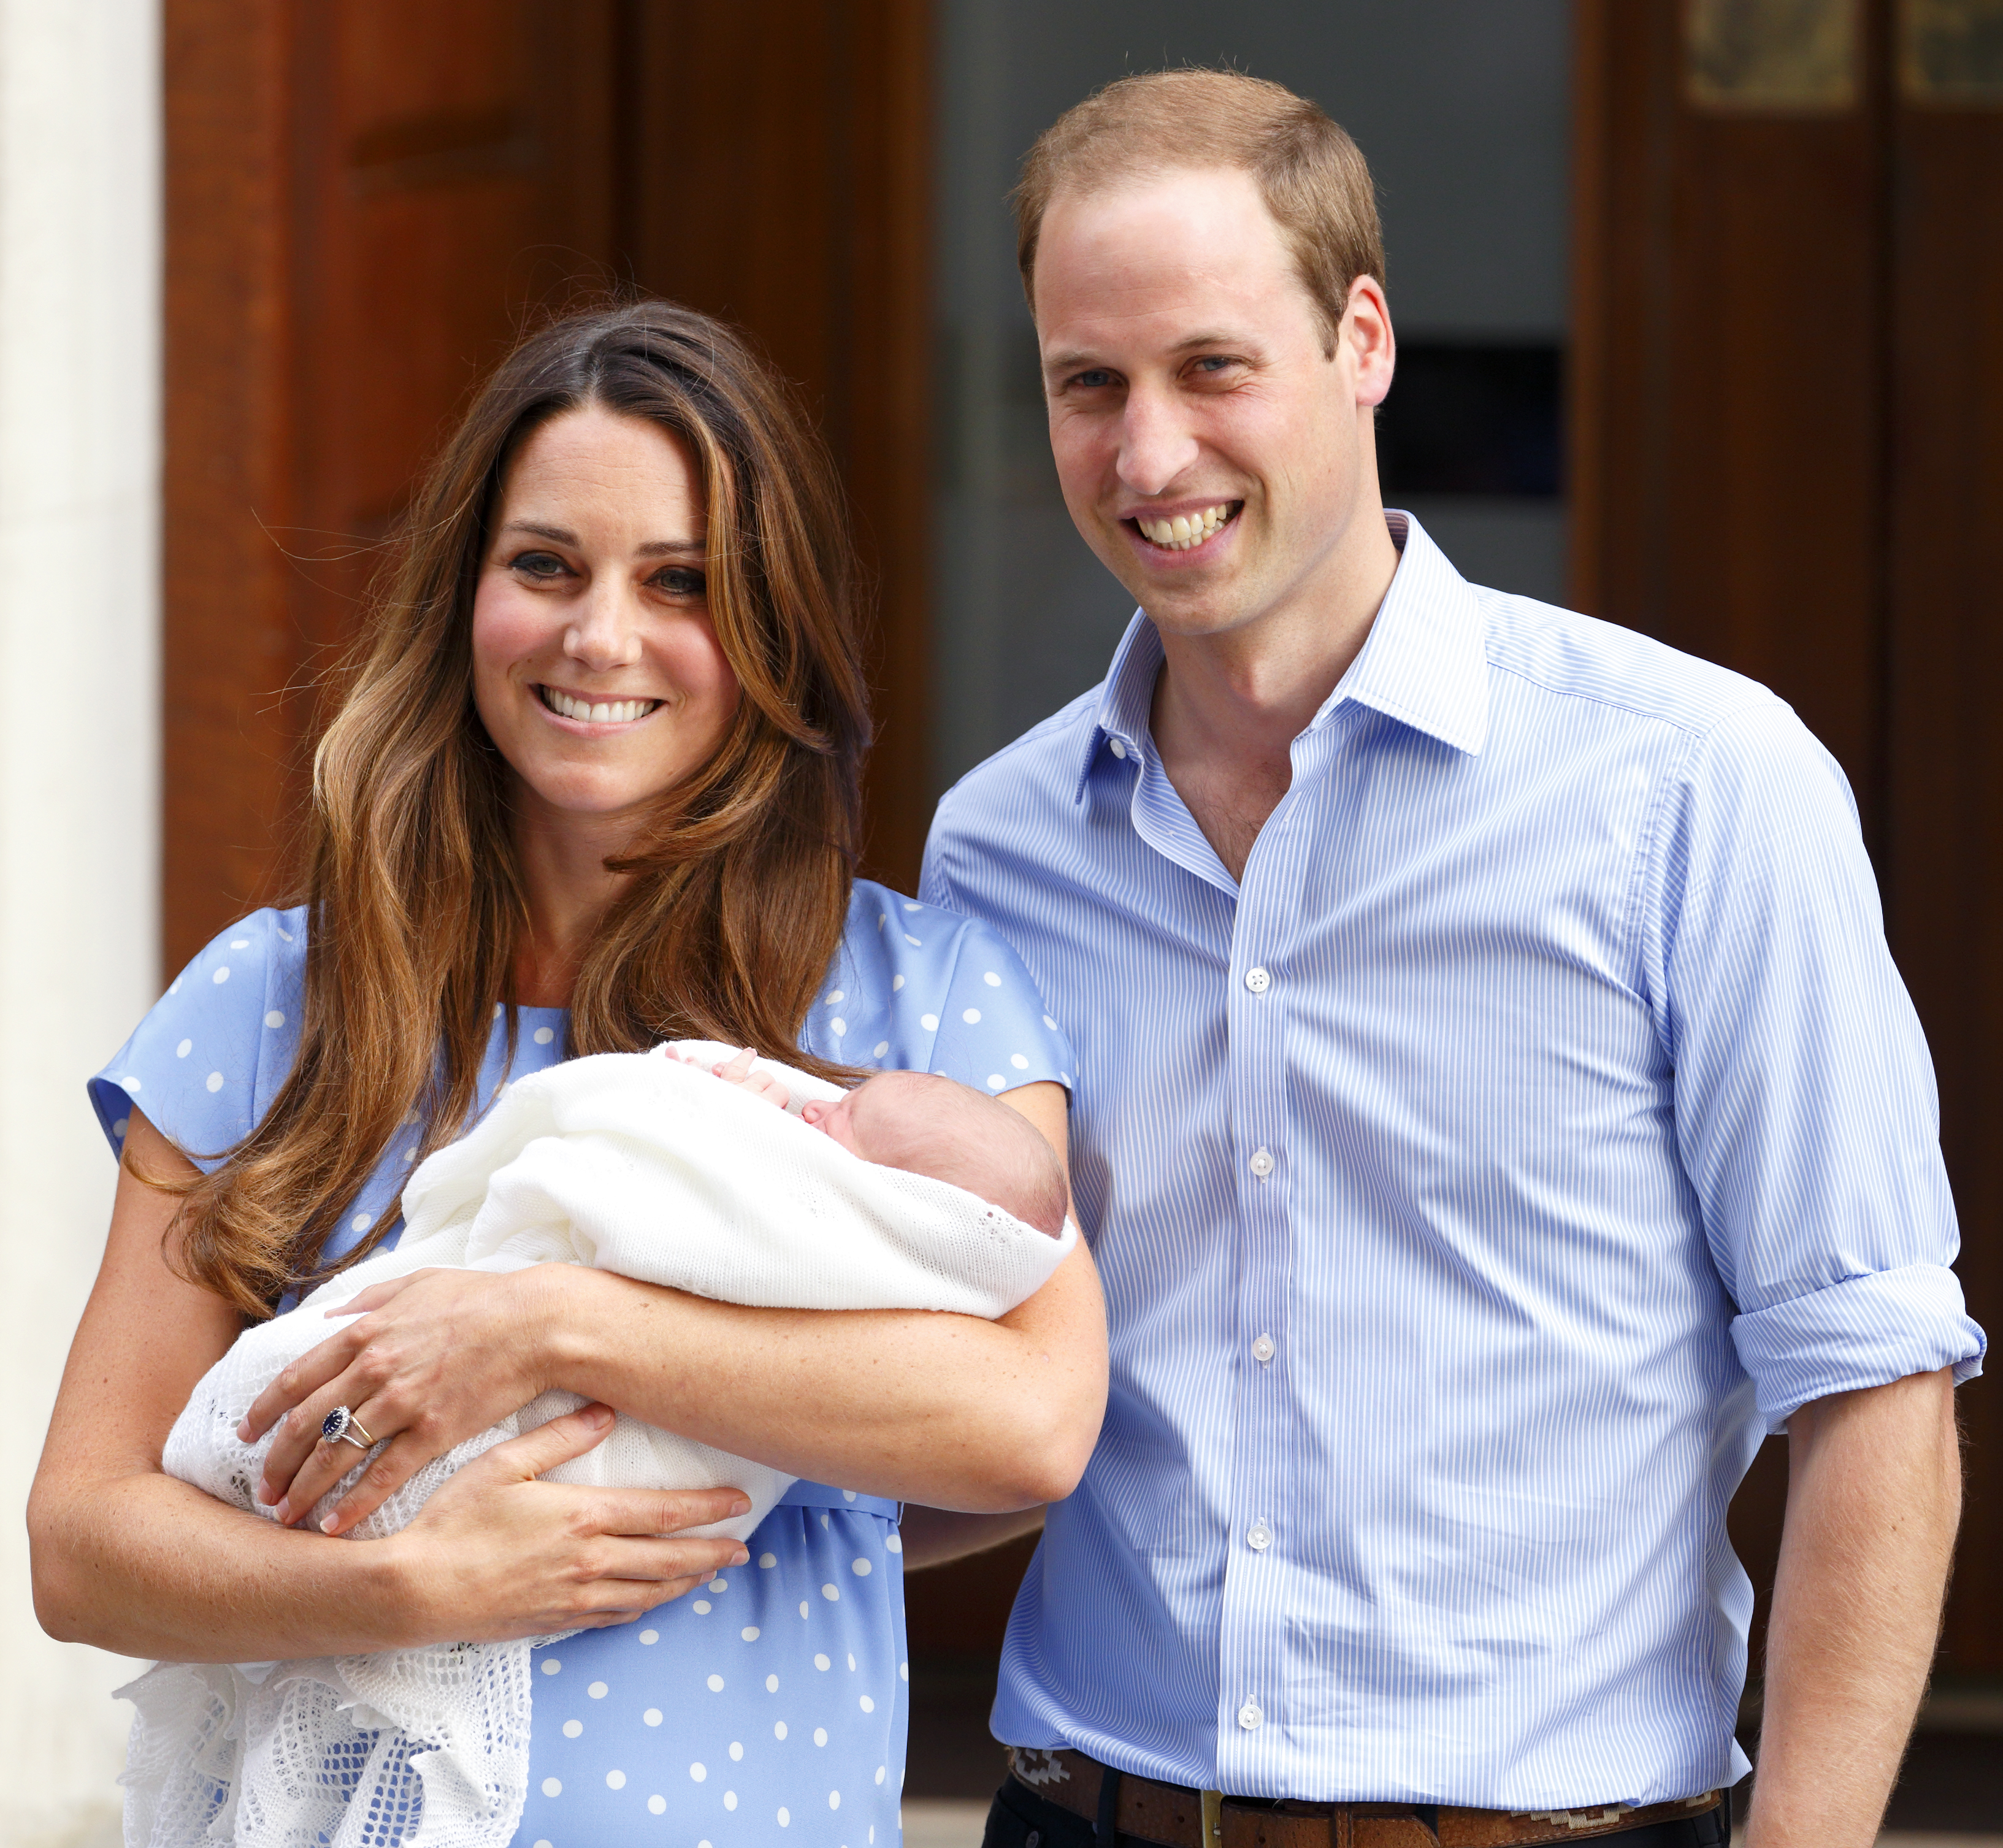 Image Credits: Getty Images/ The Duke And Duchess Of Cambridge Leave The Lindo Wing With Their Newborn Son